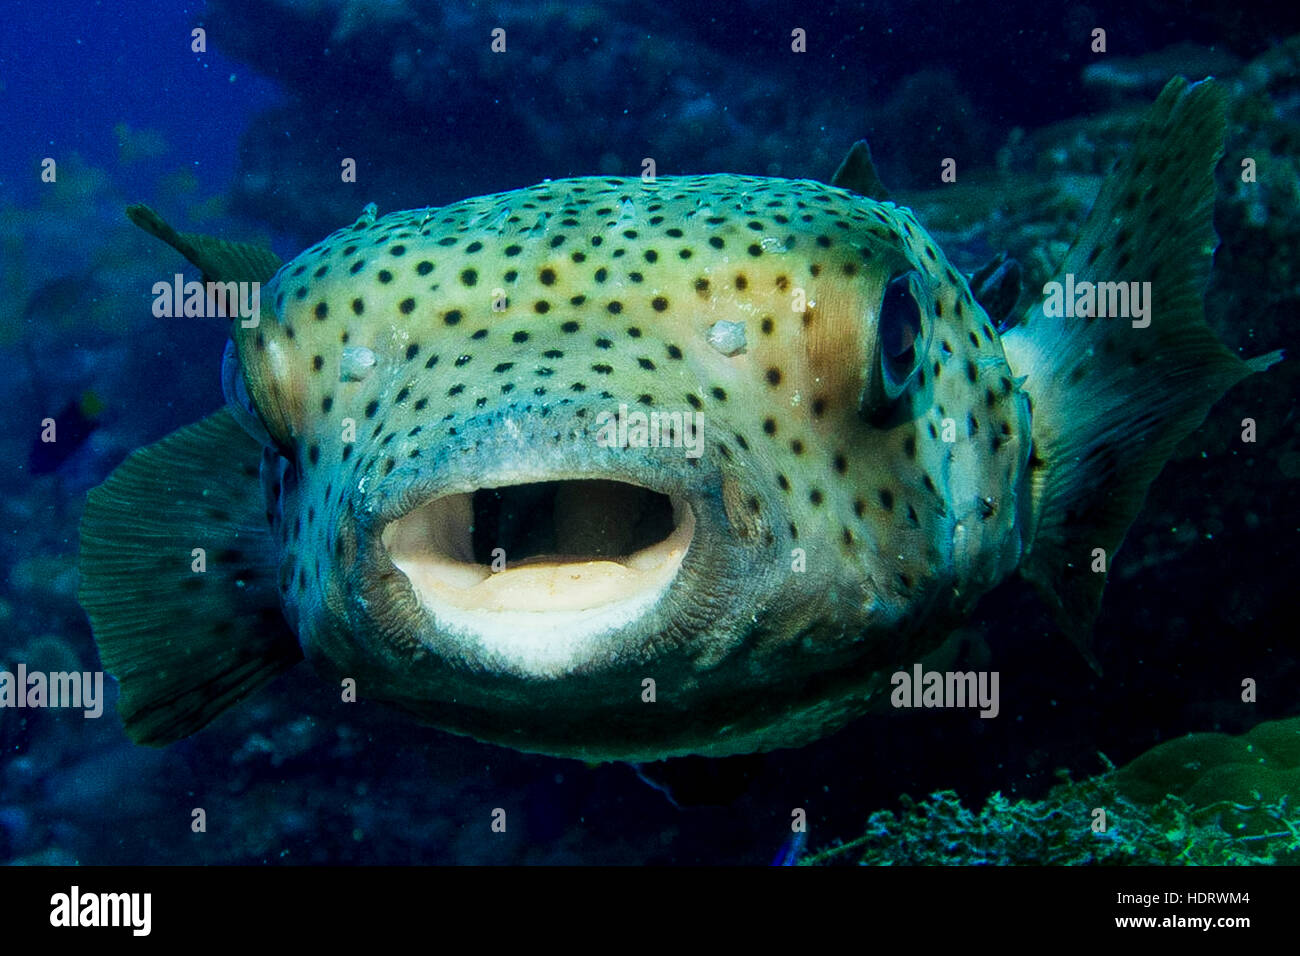 Blue porcupine puffer fish